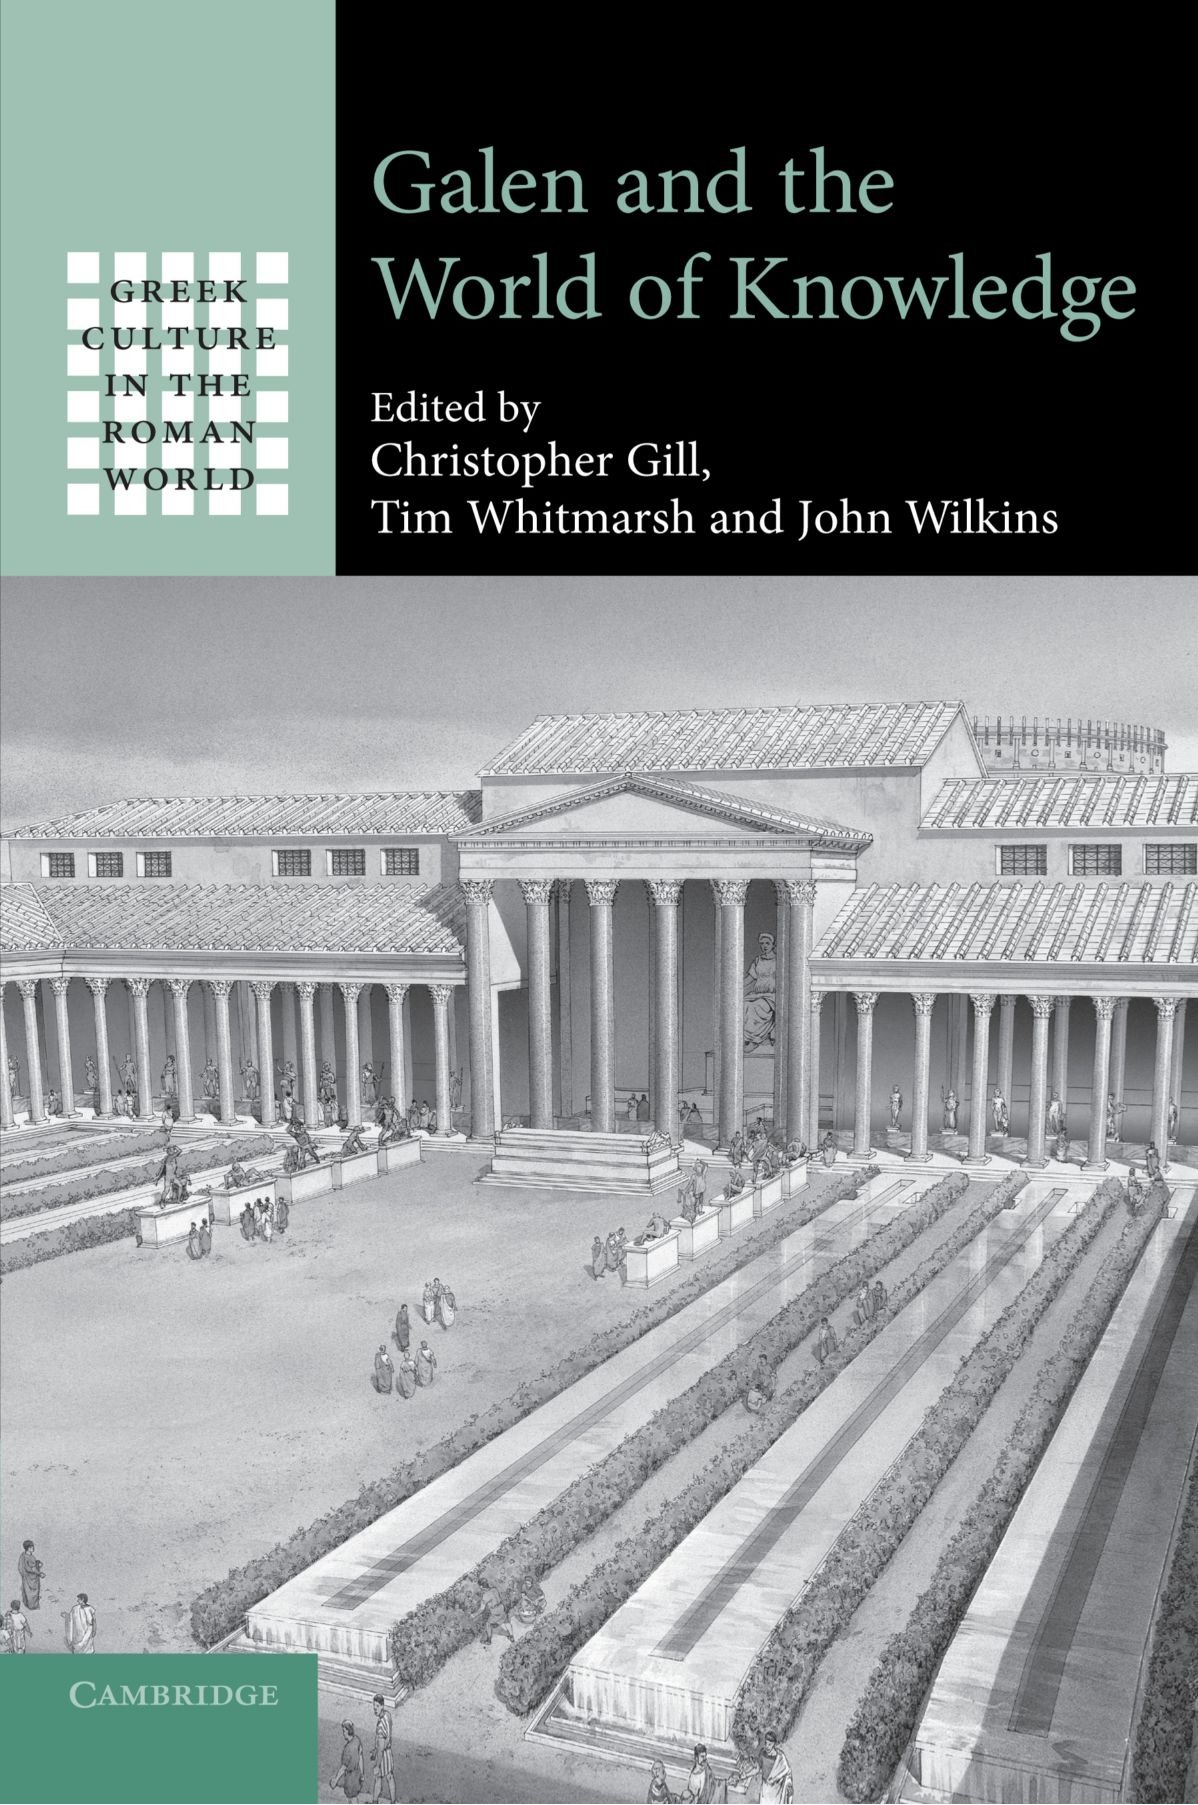 galen and the world of knowledge greek culture in the roman world amazoncouk christopher gill 9781107410749 books